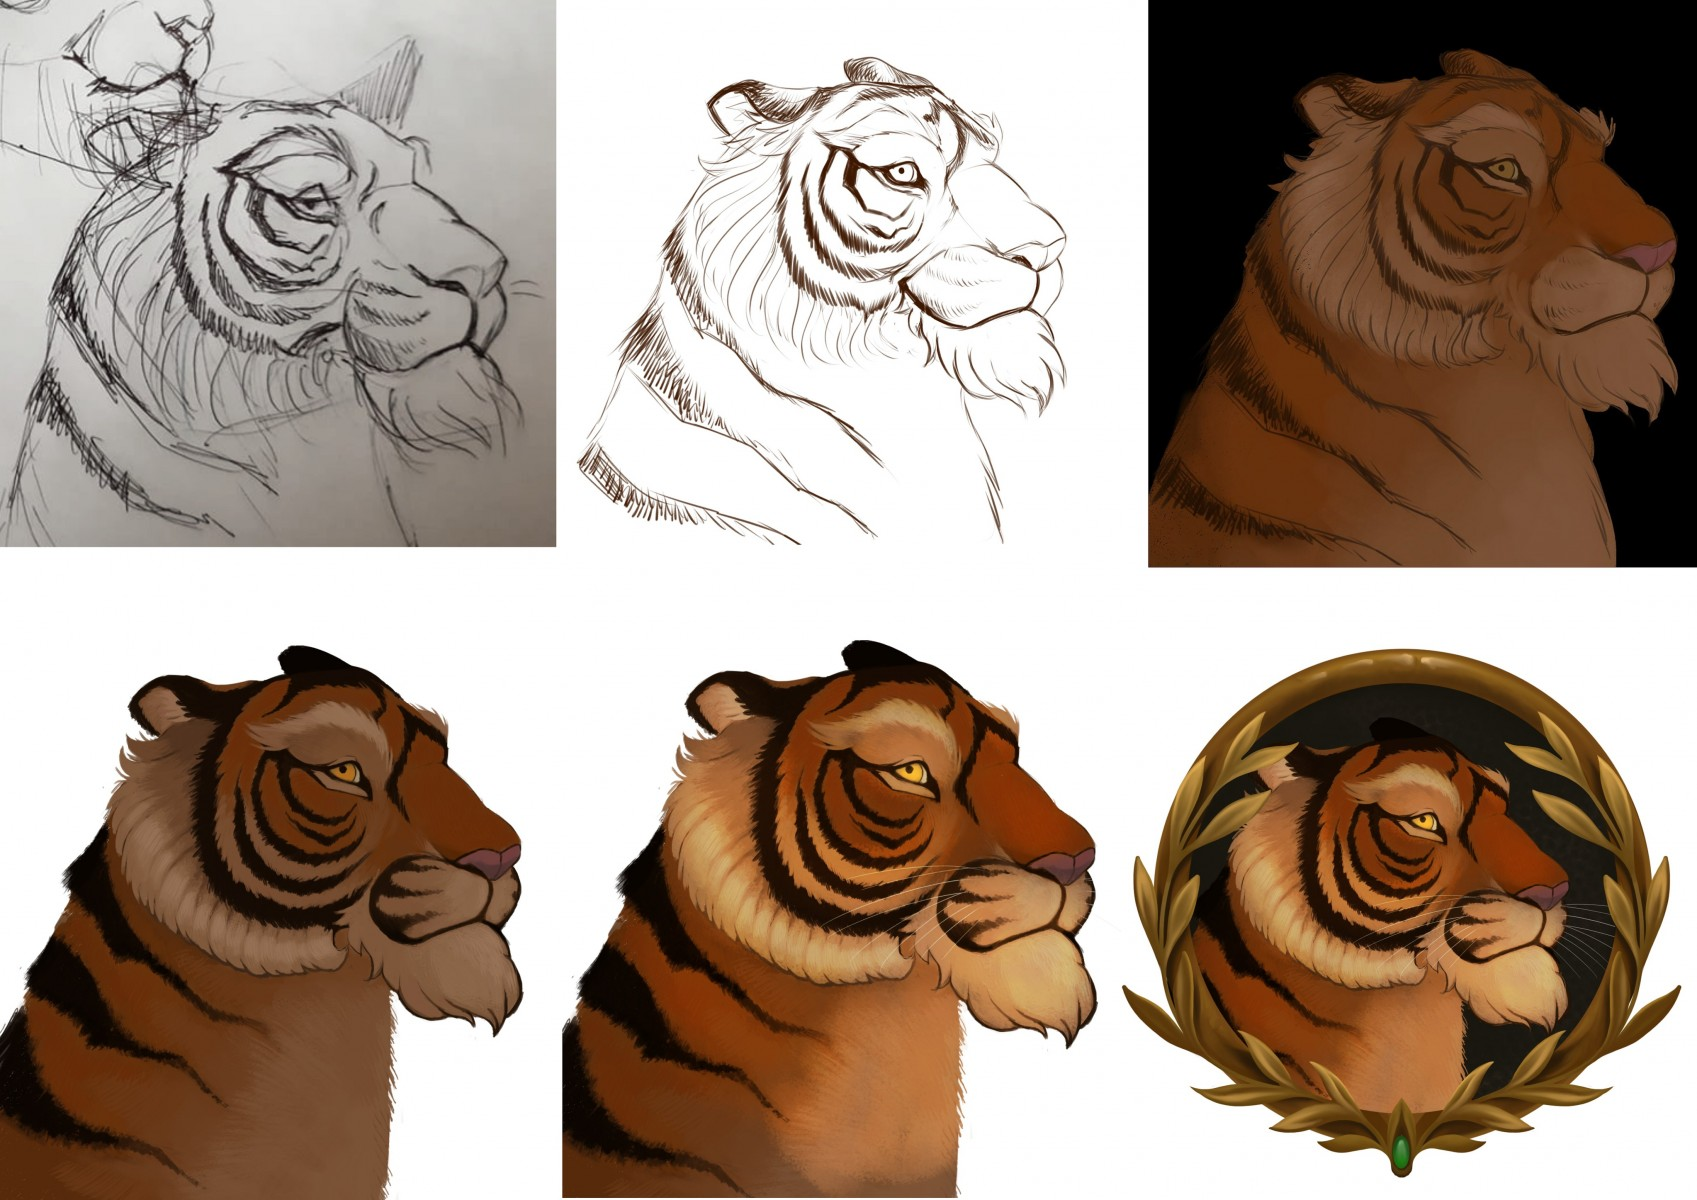 Nicolas tiger portrait process from sketch to finish